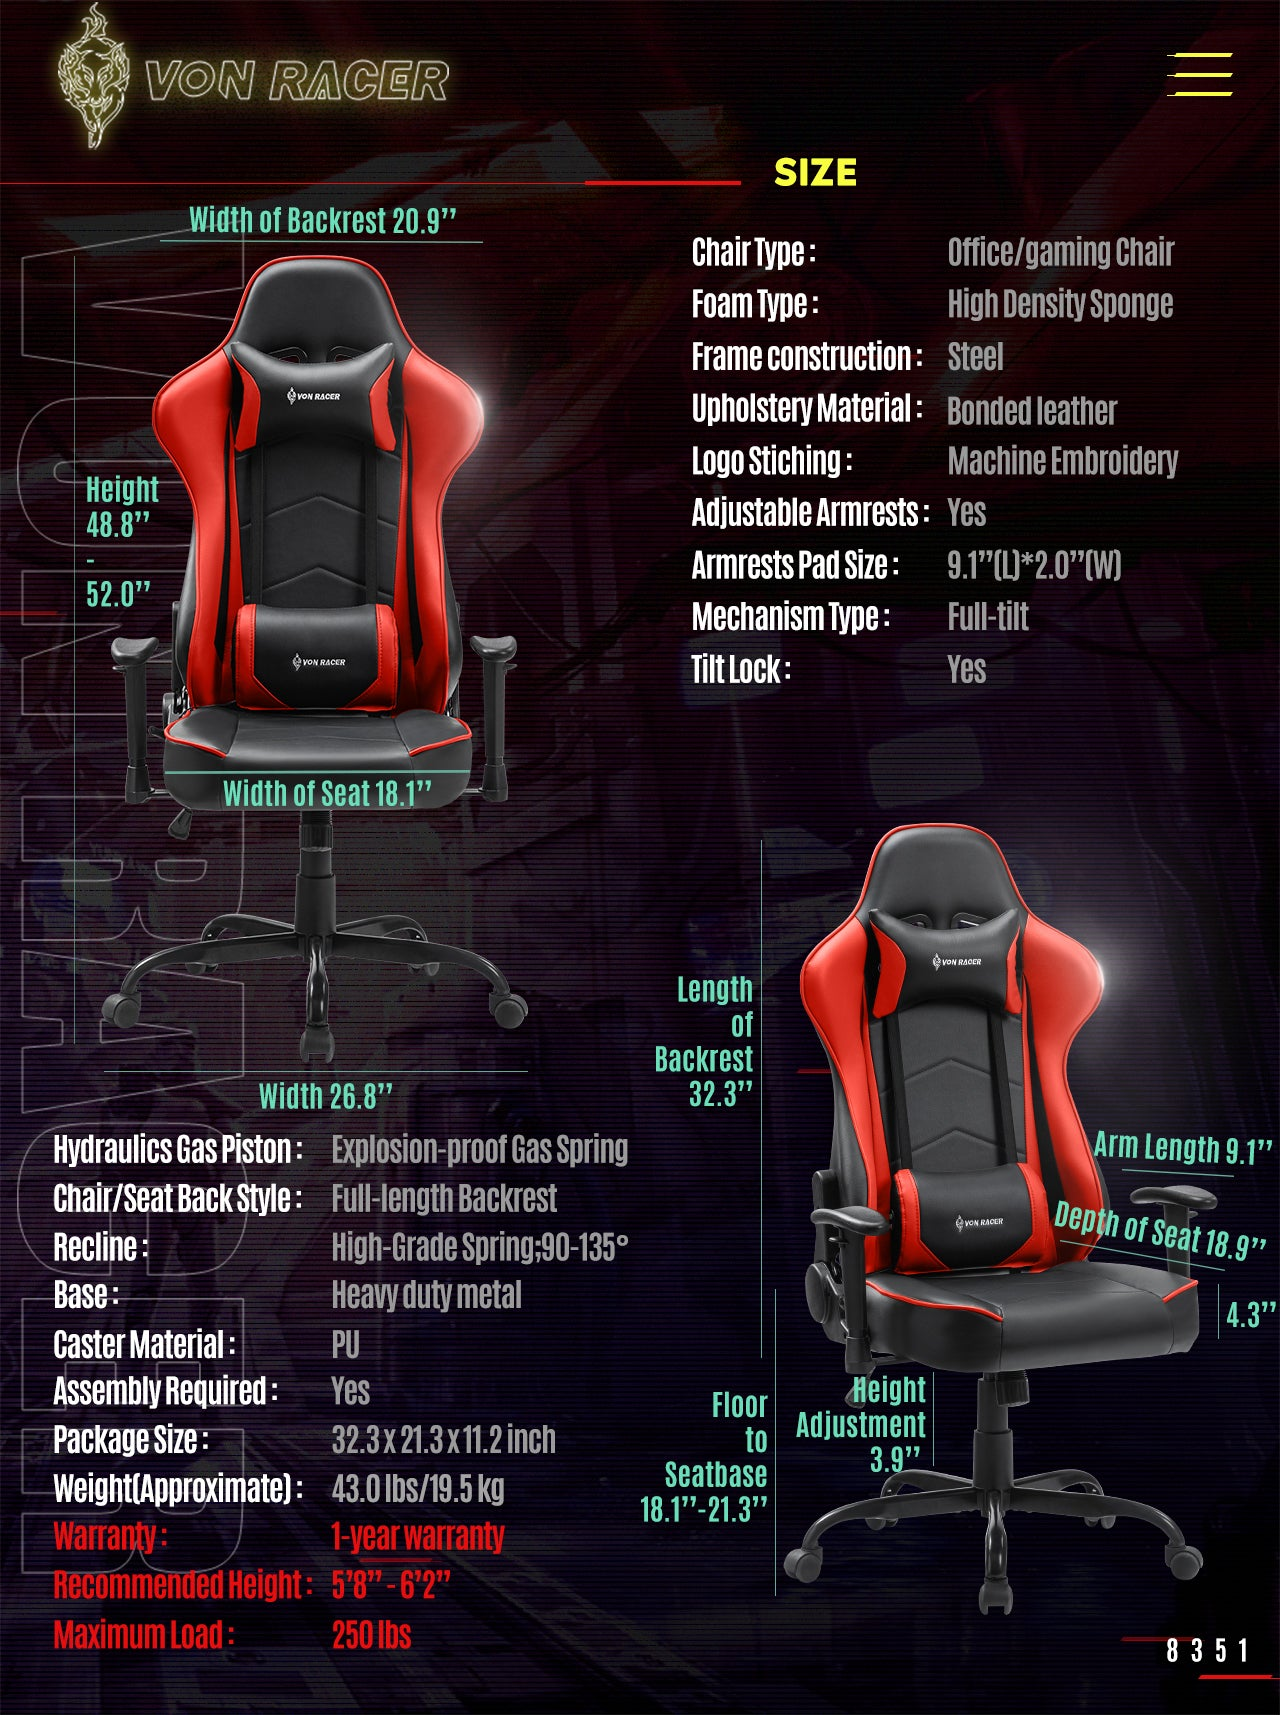 VON RACER Gaming Chair ADDAX Series Ergonomic red gaming desk chair specification